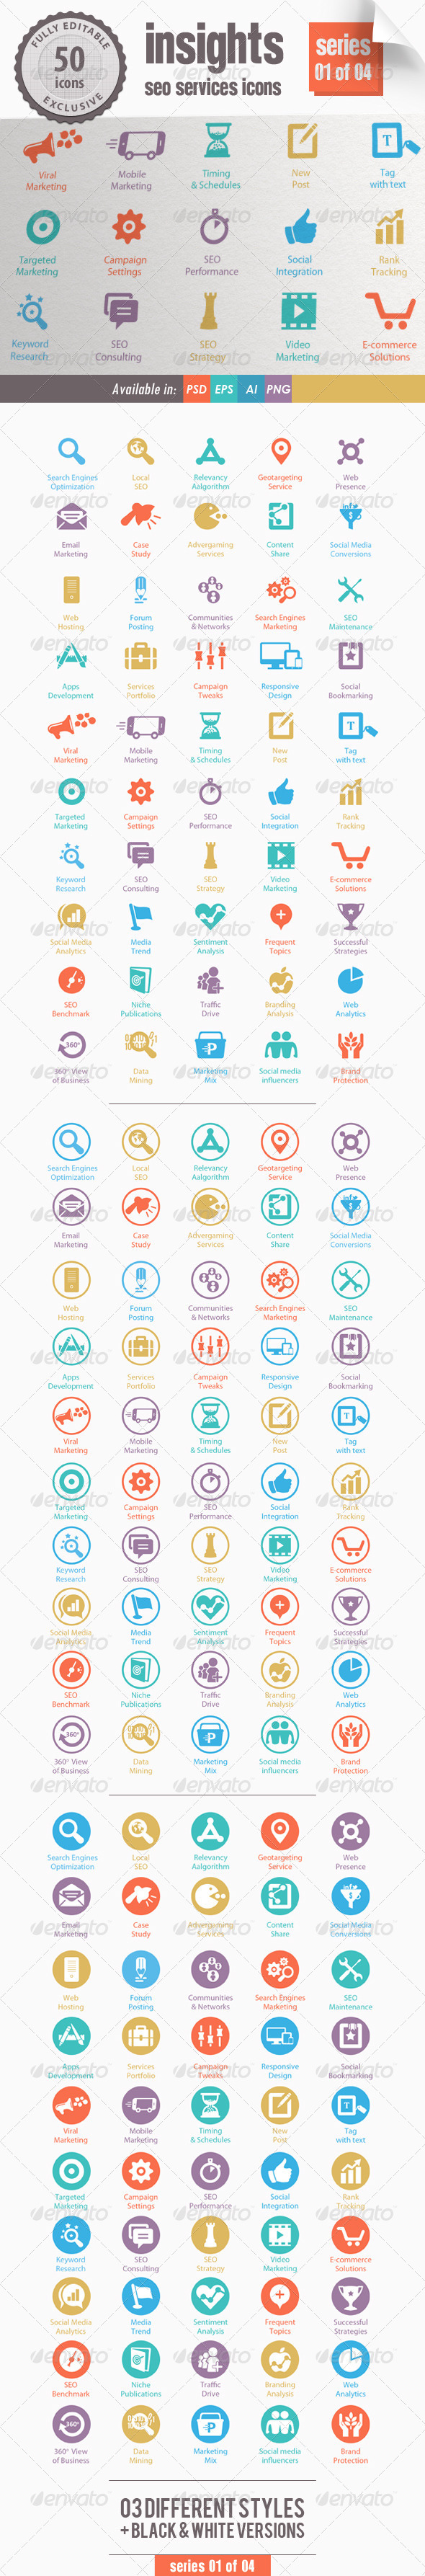 Insights SEO Services Icons - Series 01 of 04 - Web Icons